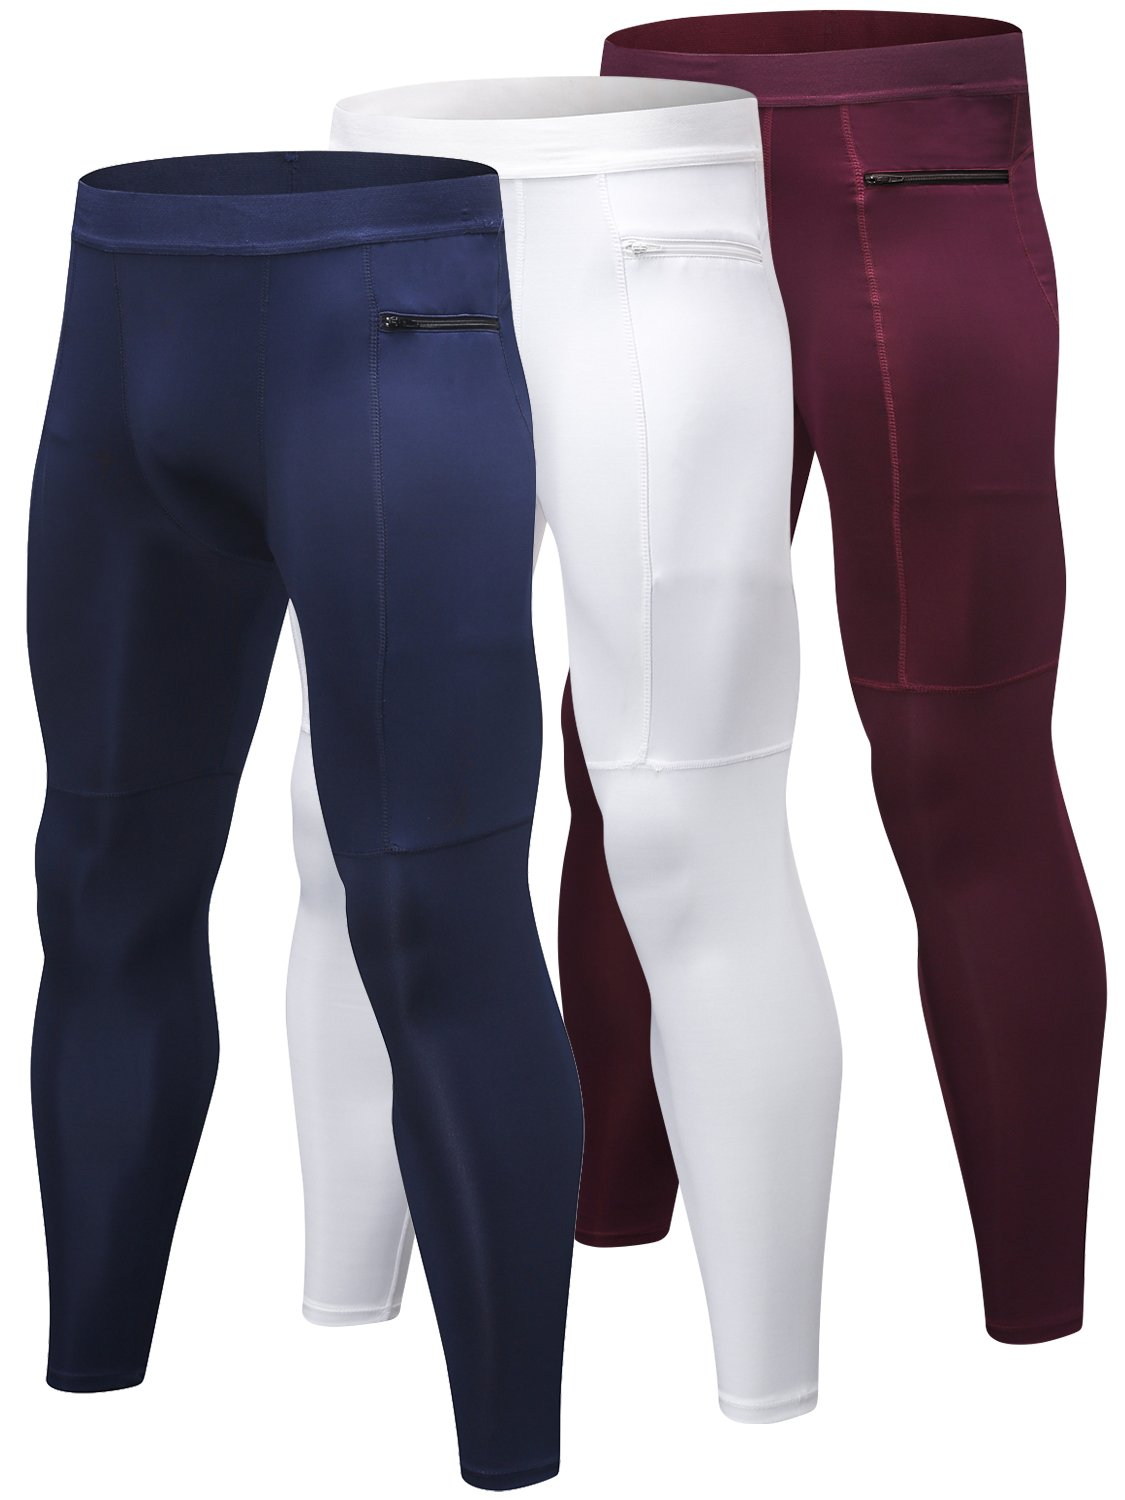 3abf0741142b9 Galleon - Yuerlian Men's Compression Pants Cool Dry Baselayer Tights  Leggings 3 Pack